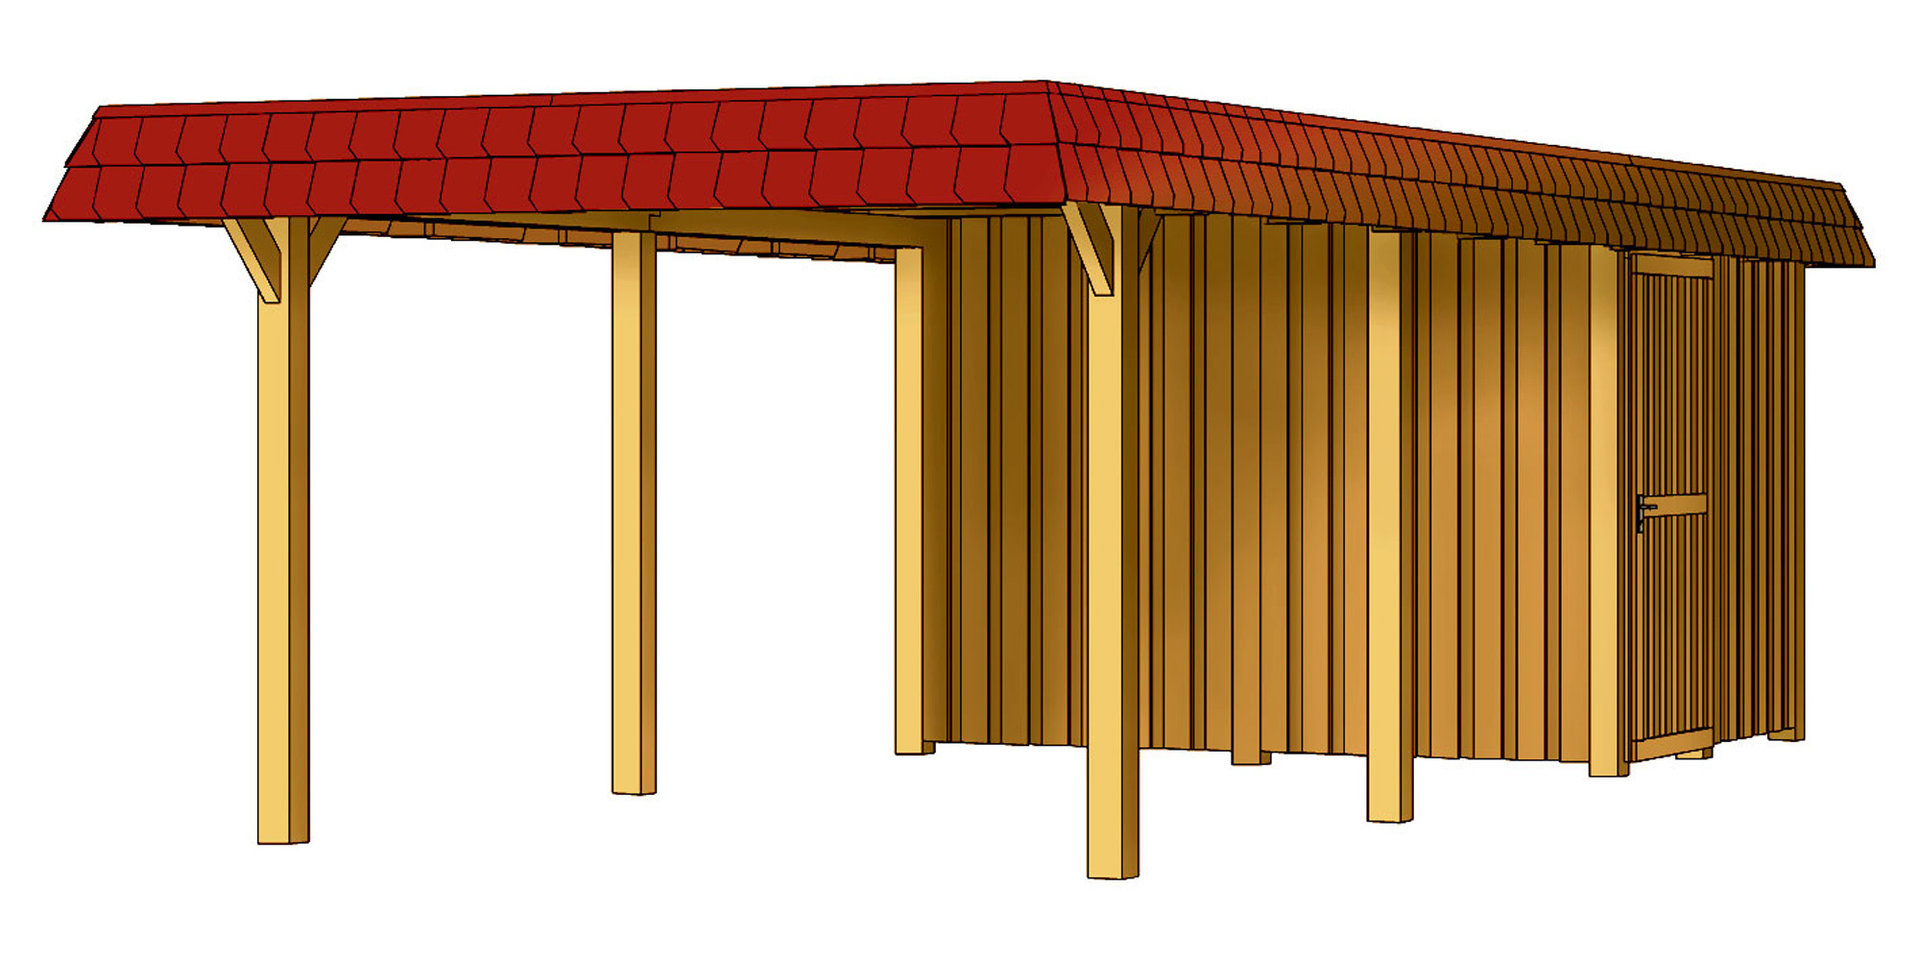 Wendland carport with storage room garden house wood shop Carport with storage room